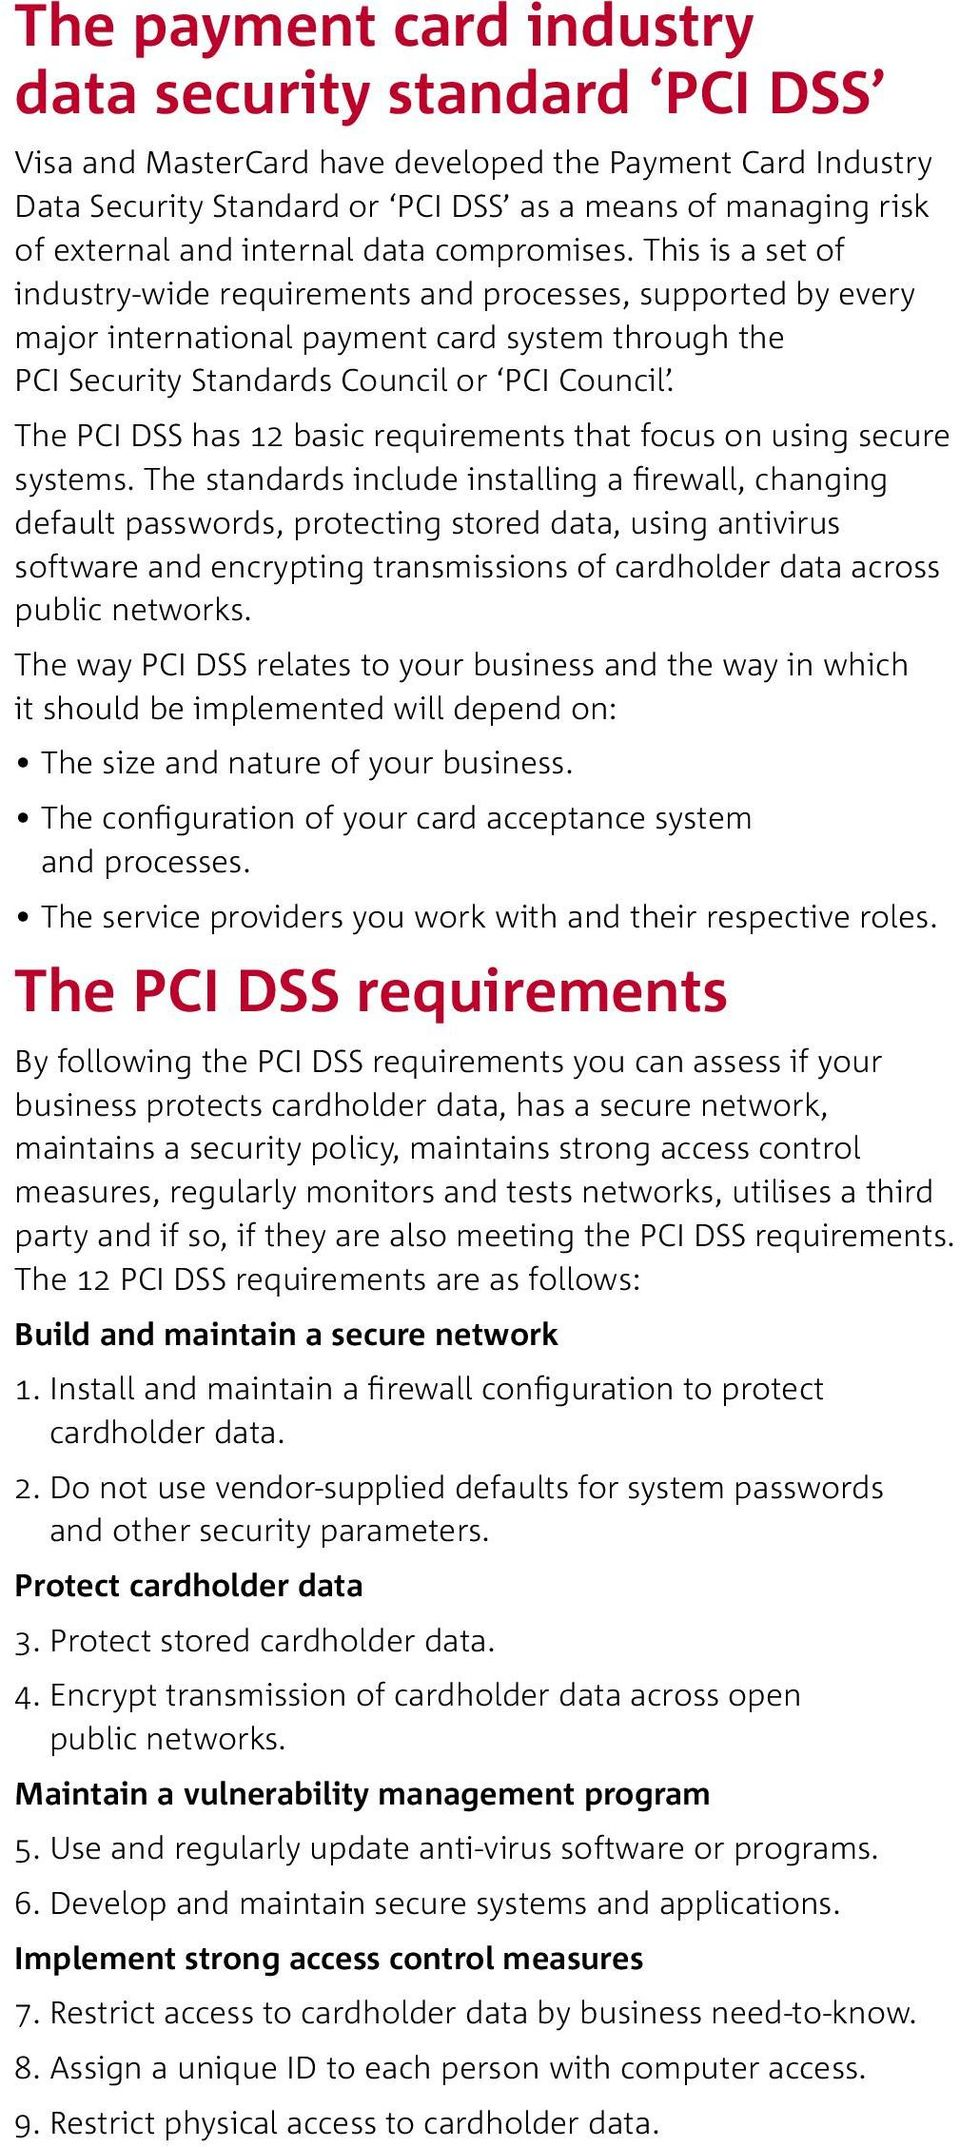 This is a set of industry-wide requirements and processes, supported by every major international payment card system through the PCI Security Standards Council or PCI Council.